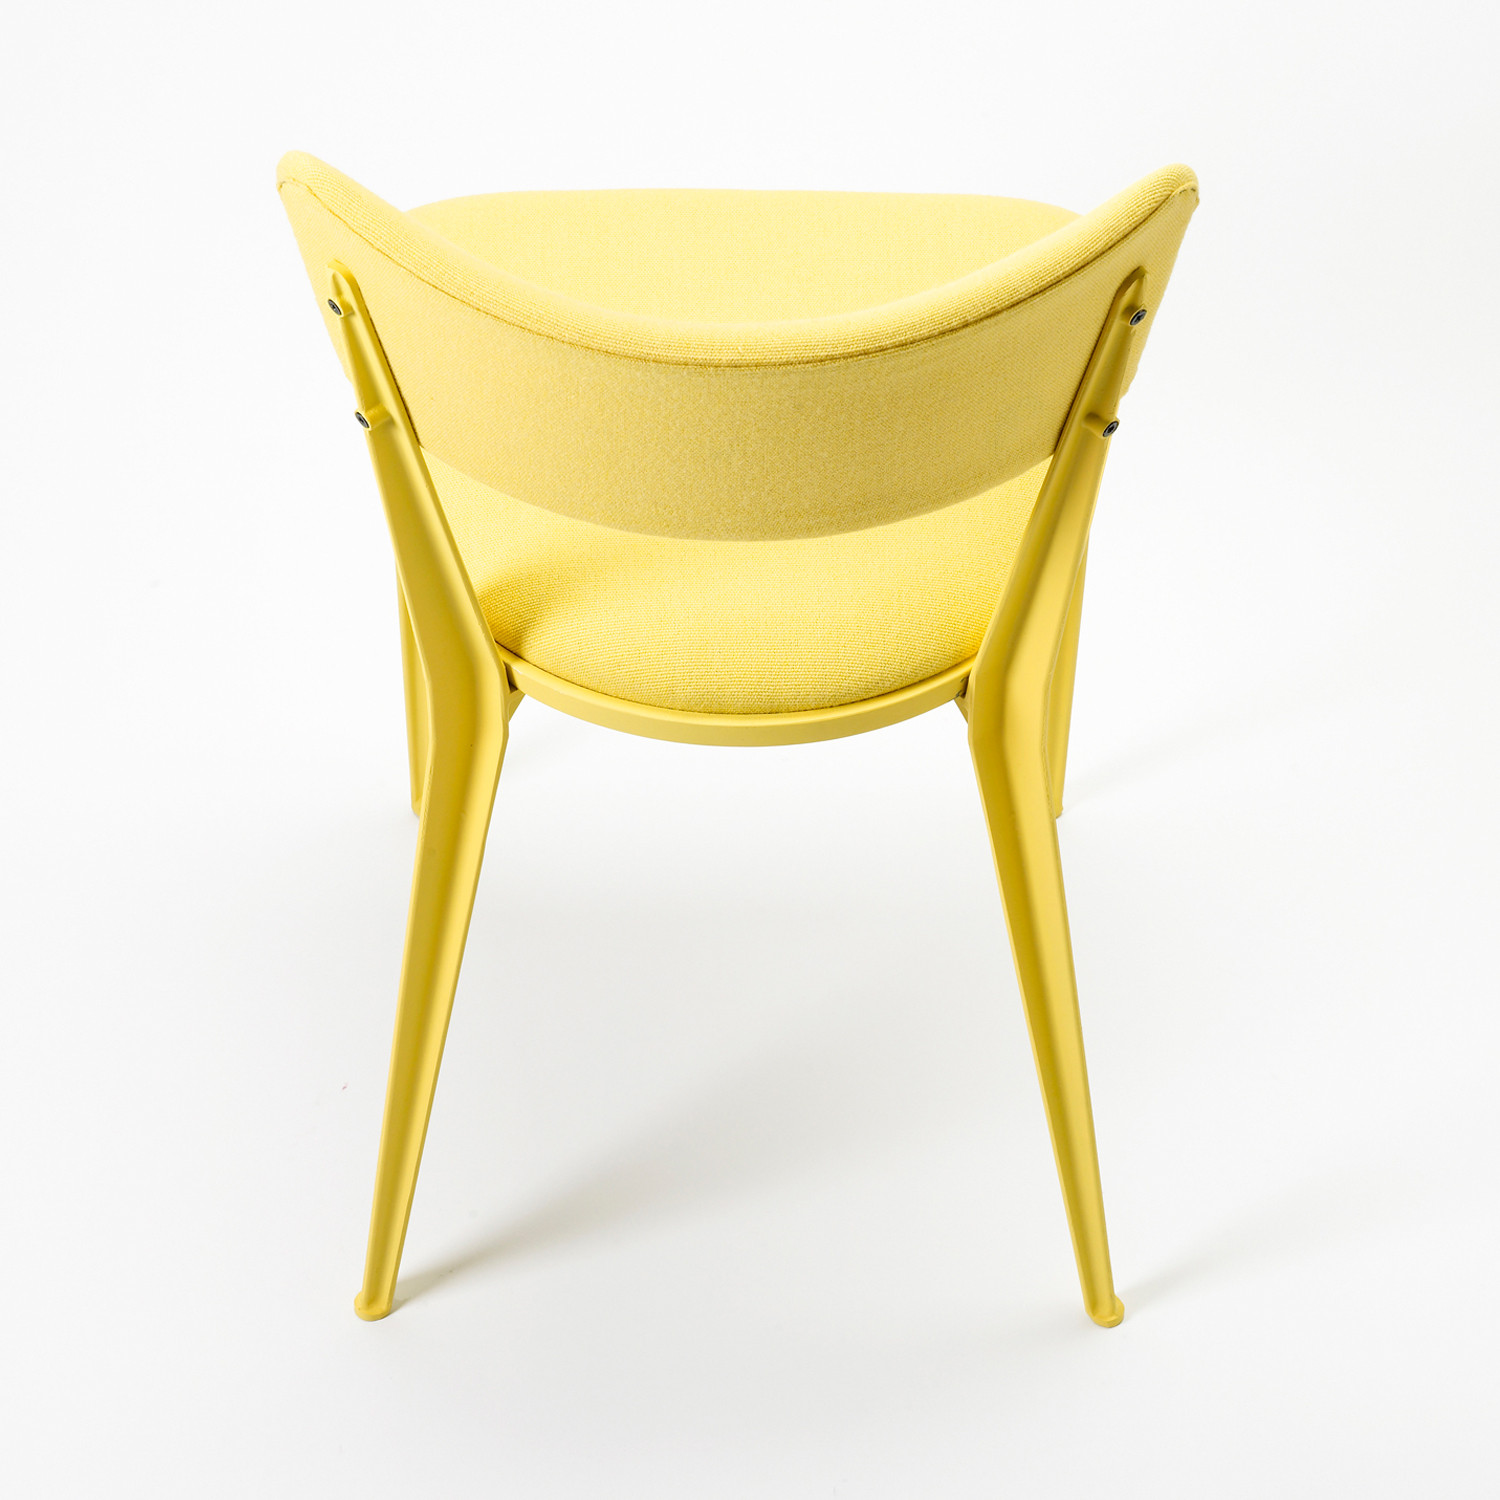 BA3 Chair by Race Furniture